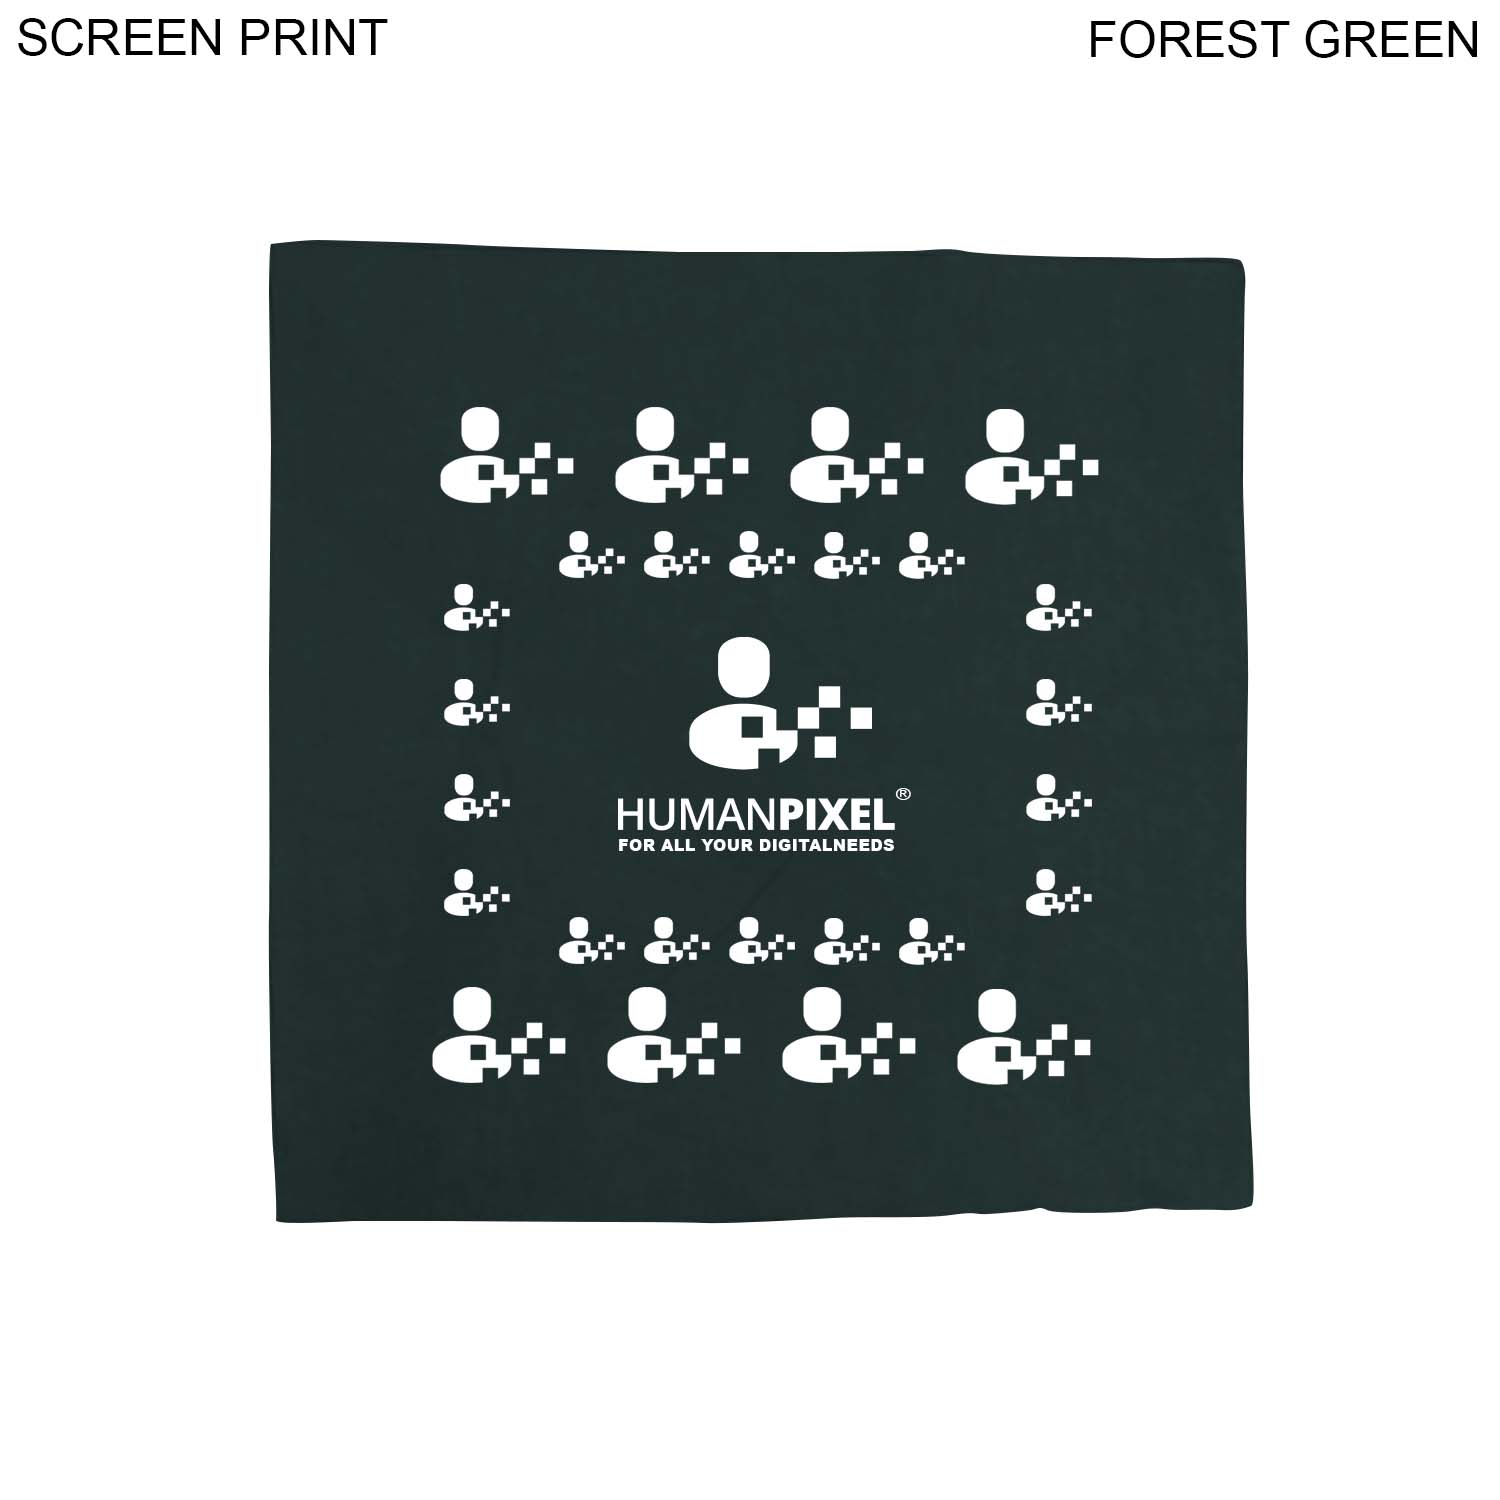 Small Bandana, 14x14, #PR633, 1 Colour Imprint